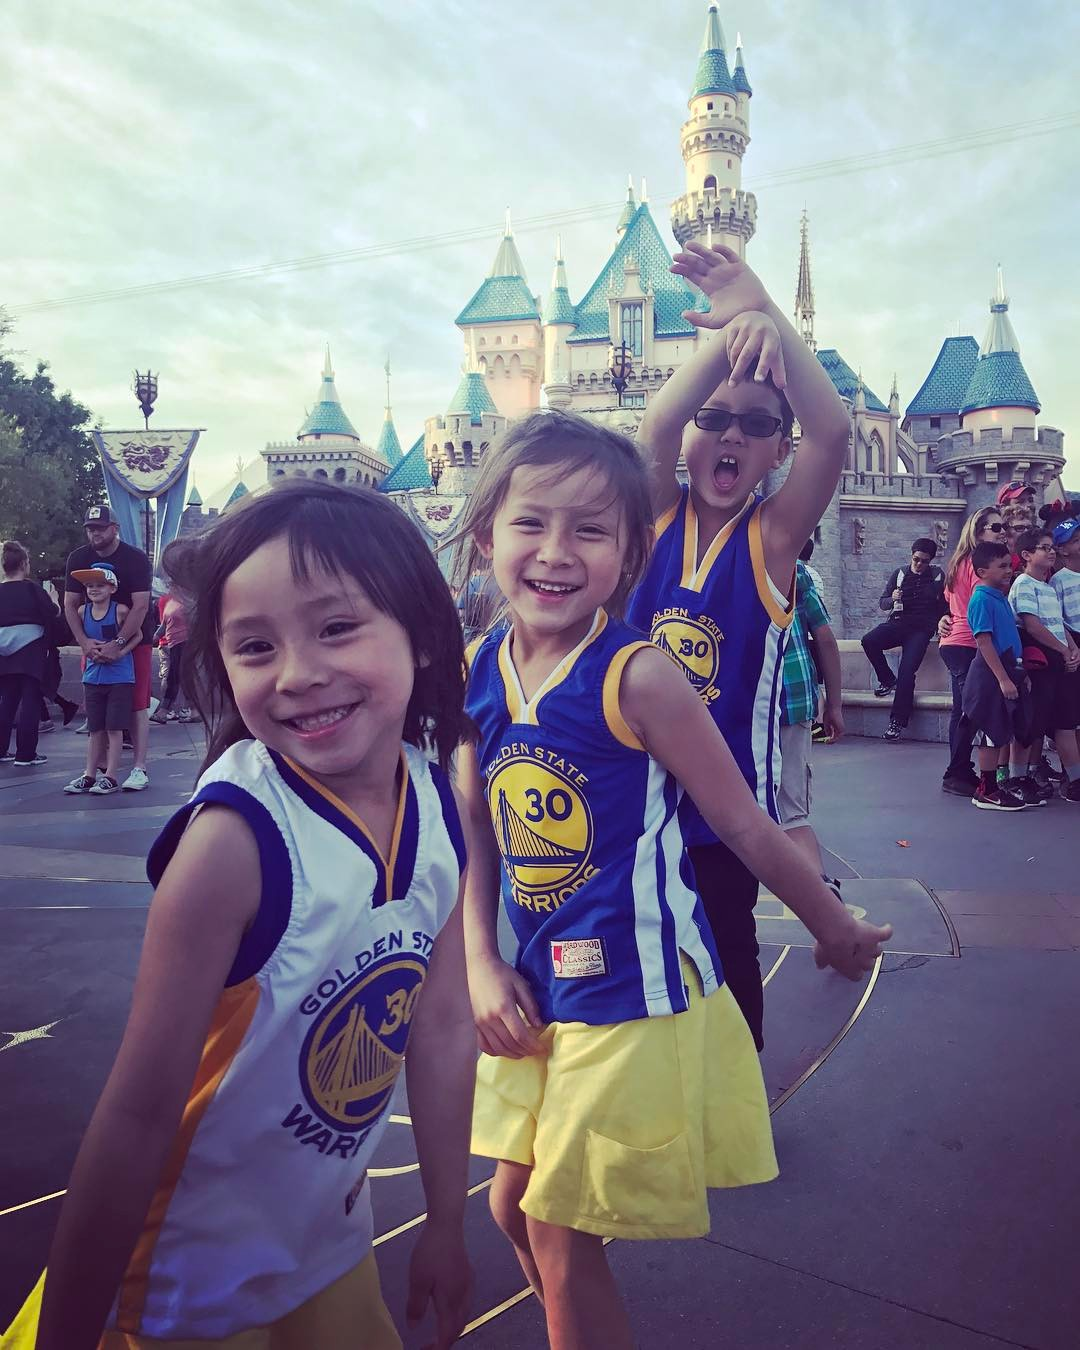 "<div class=""meta image-caption""><div class=""origin-logo origin-image none""><span>none</span></div><span class=""caption-text"">Golden State Warriors fans are showing their spirit by tagging their photos #DubsOn7. (stel.rn/Instagram)</span></div>"